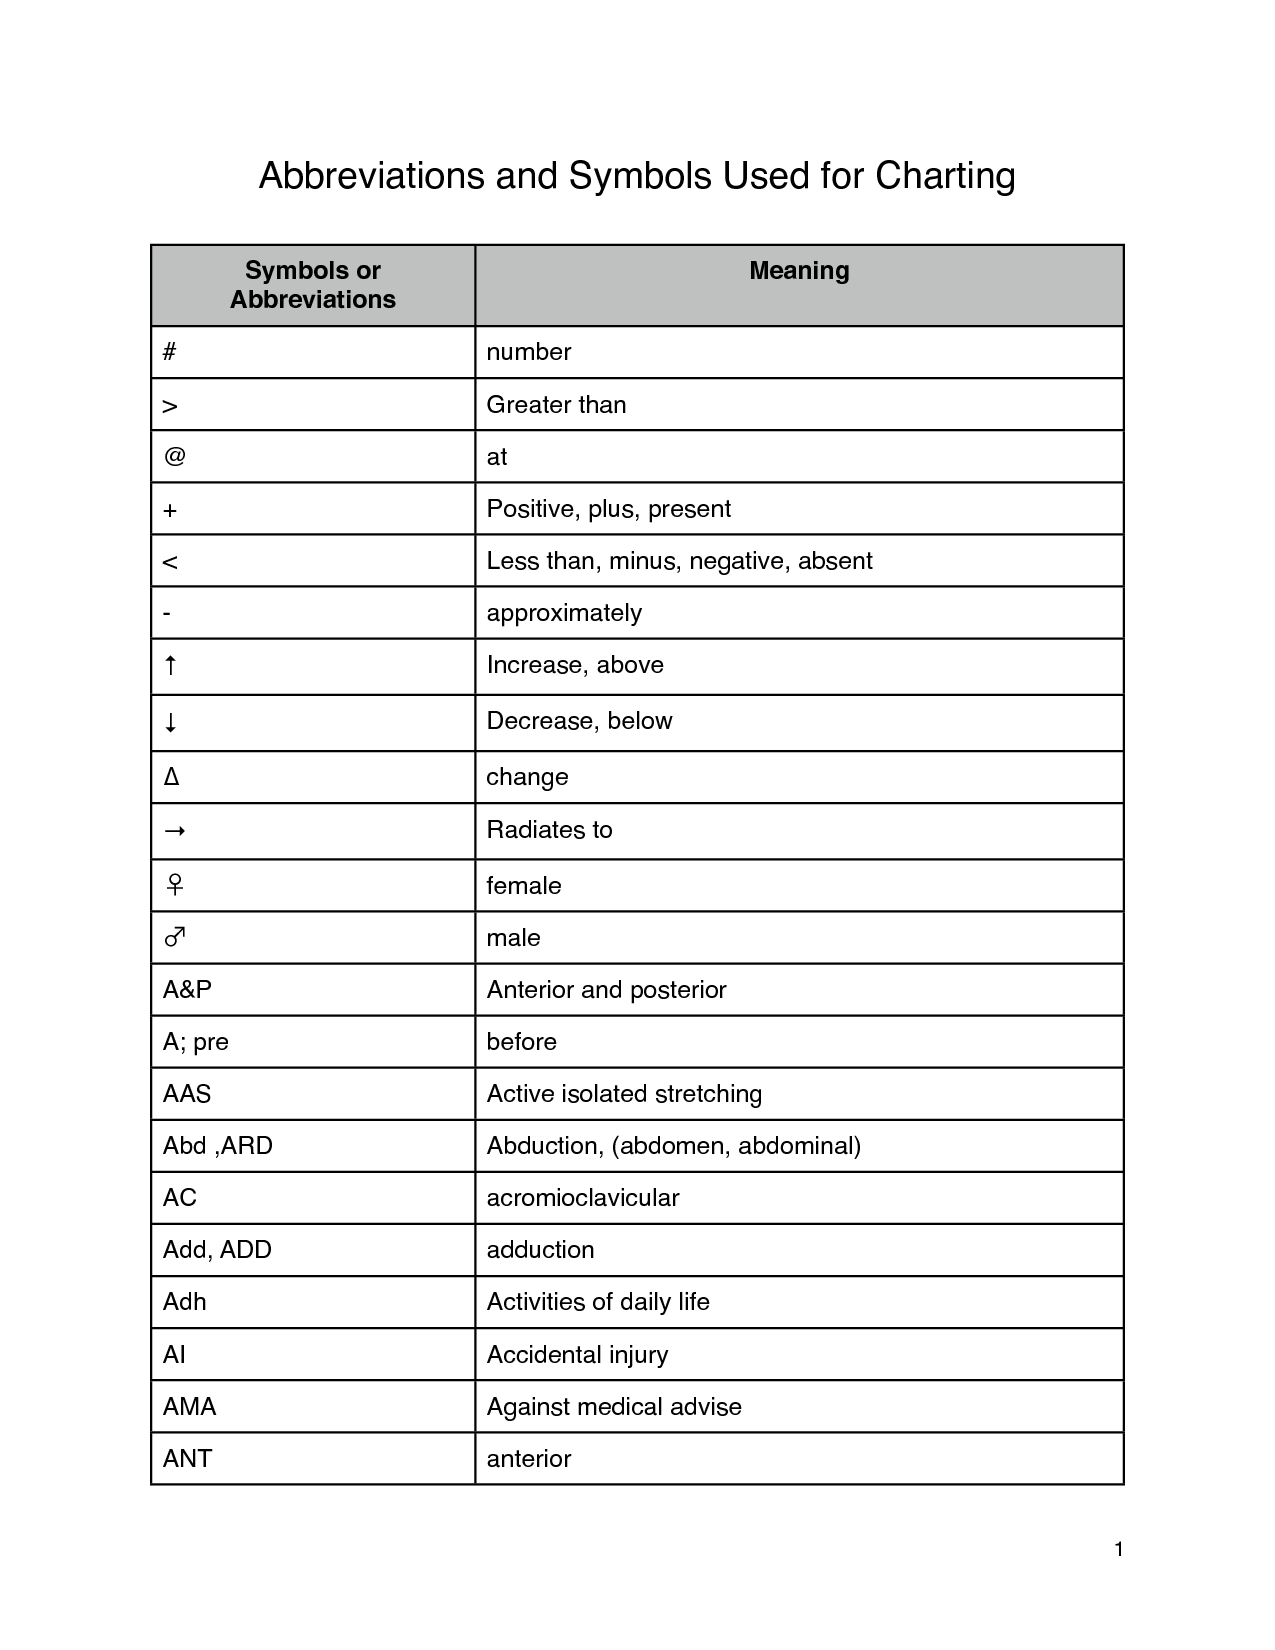 Medical charting symbols abbreviations and symbols used for medical charting symbols abbreviations and symbols used for charting symbols or meaning biocorpaavc Choice Image